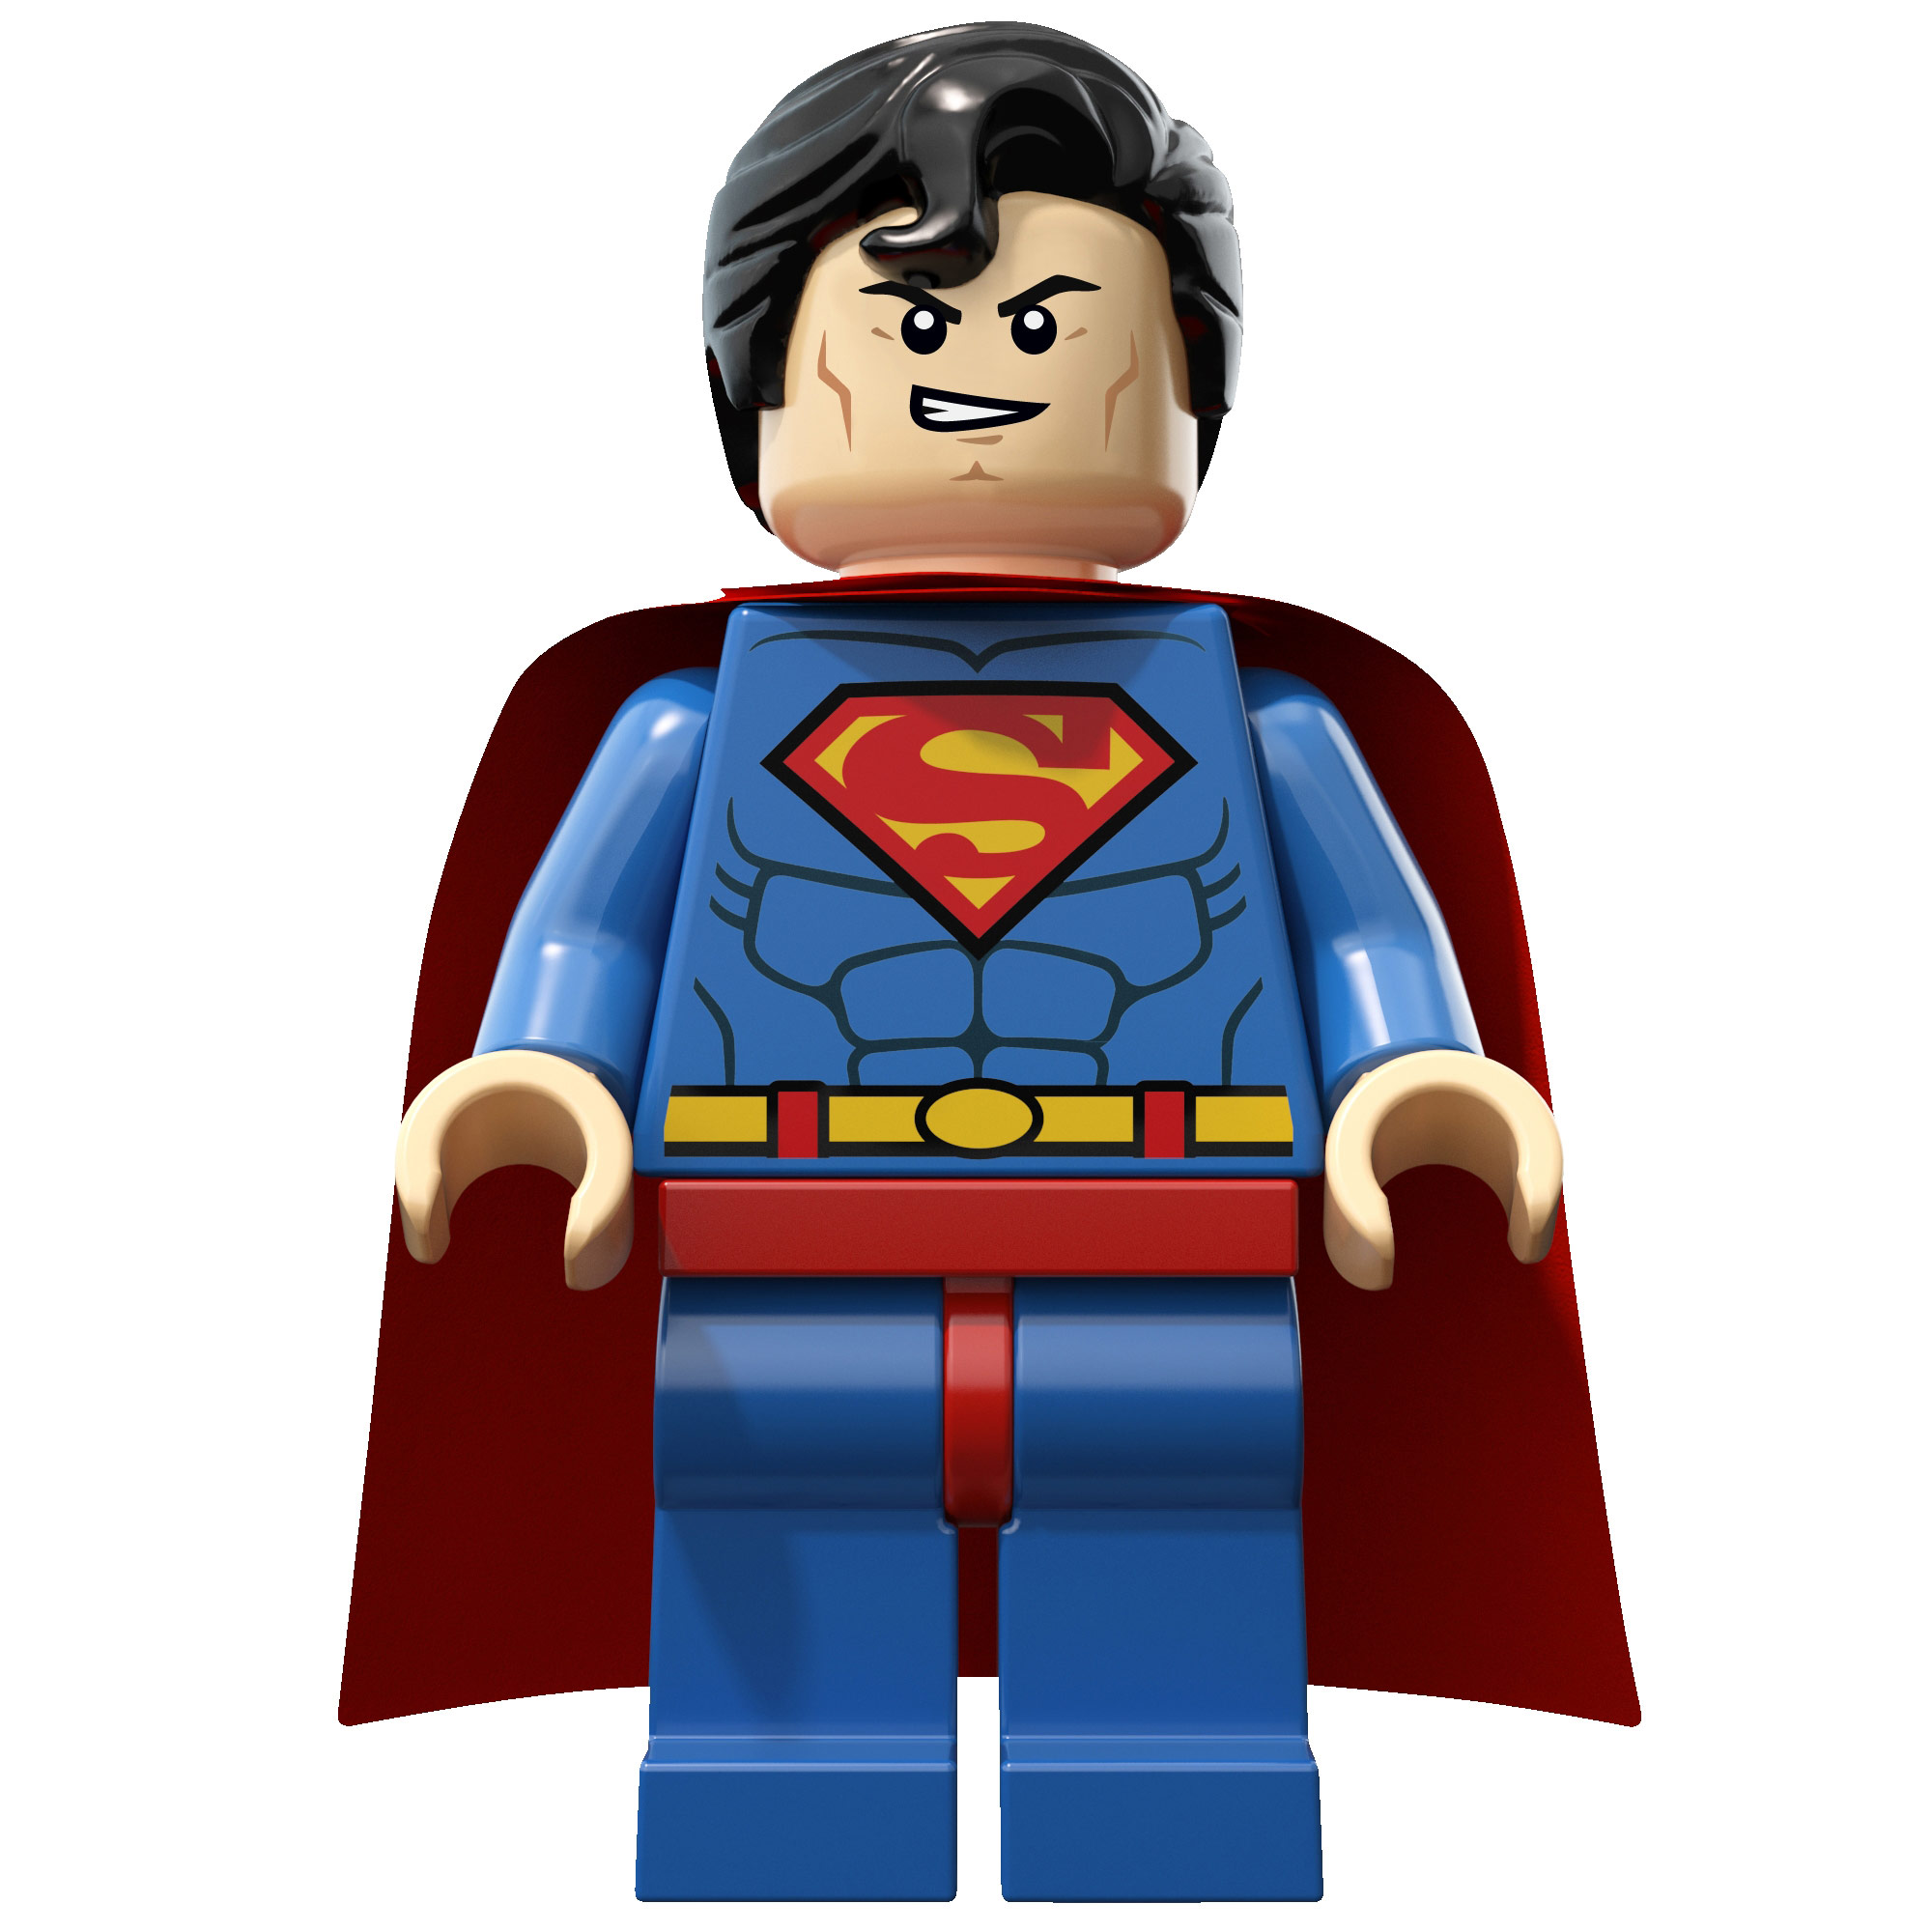 http://static4.wikia.nocookie.net/__cb20130202180640/lego/images/7/72/Superman.jpg